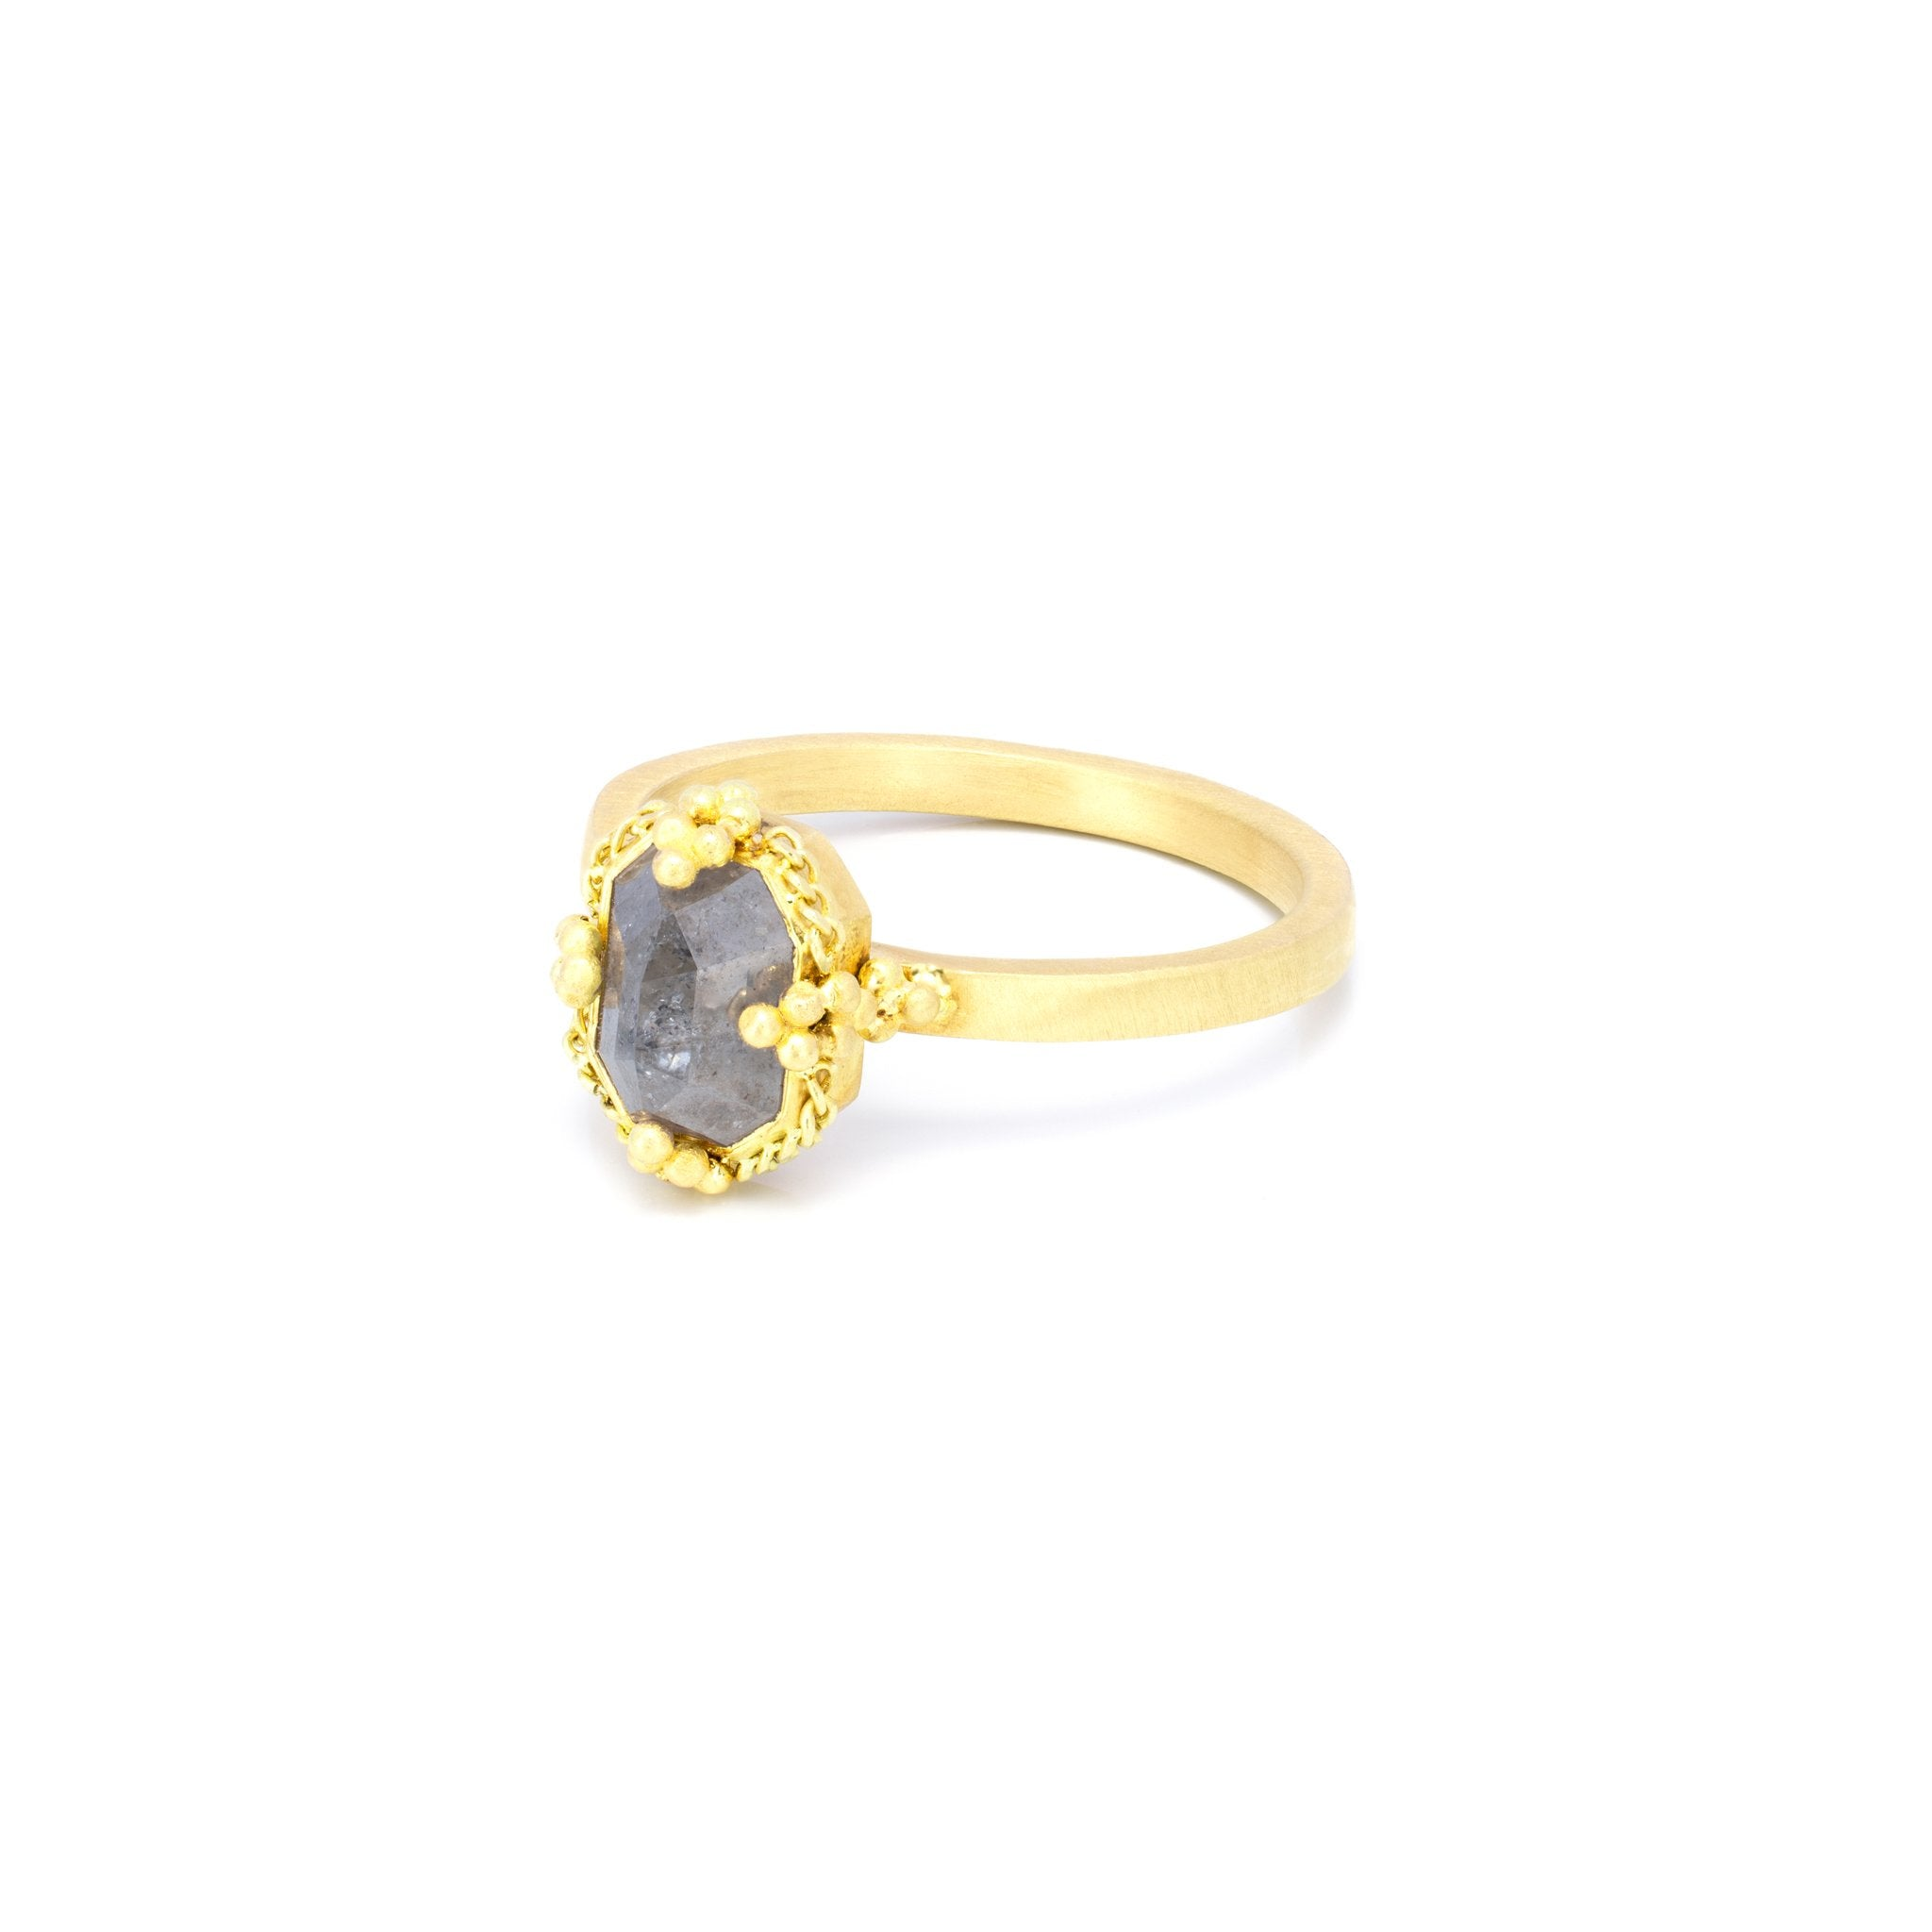 Amali Rose Cut Diamond Ring